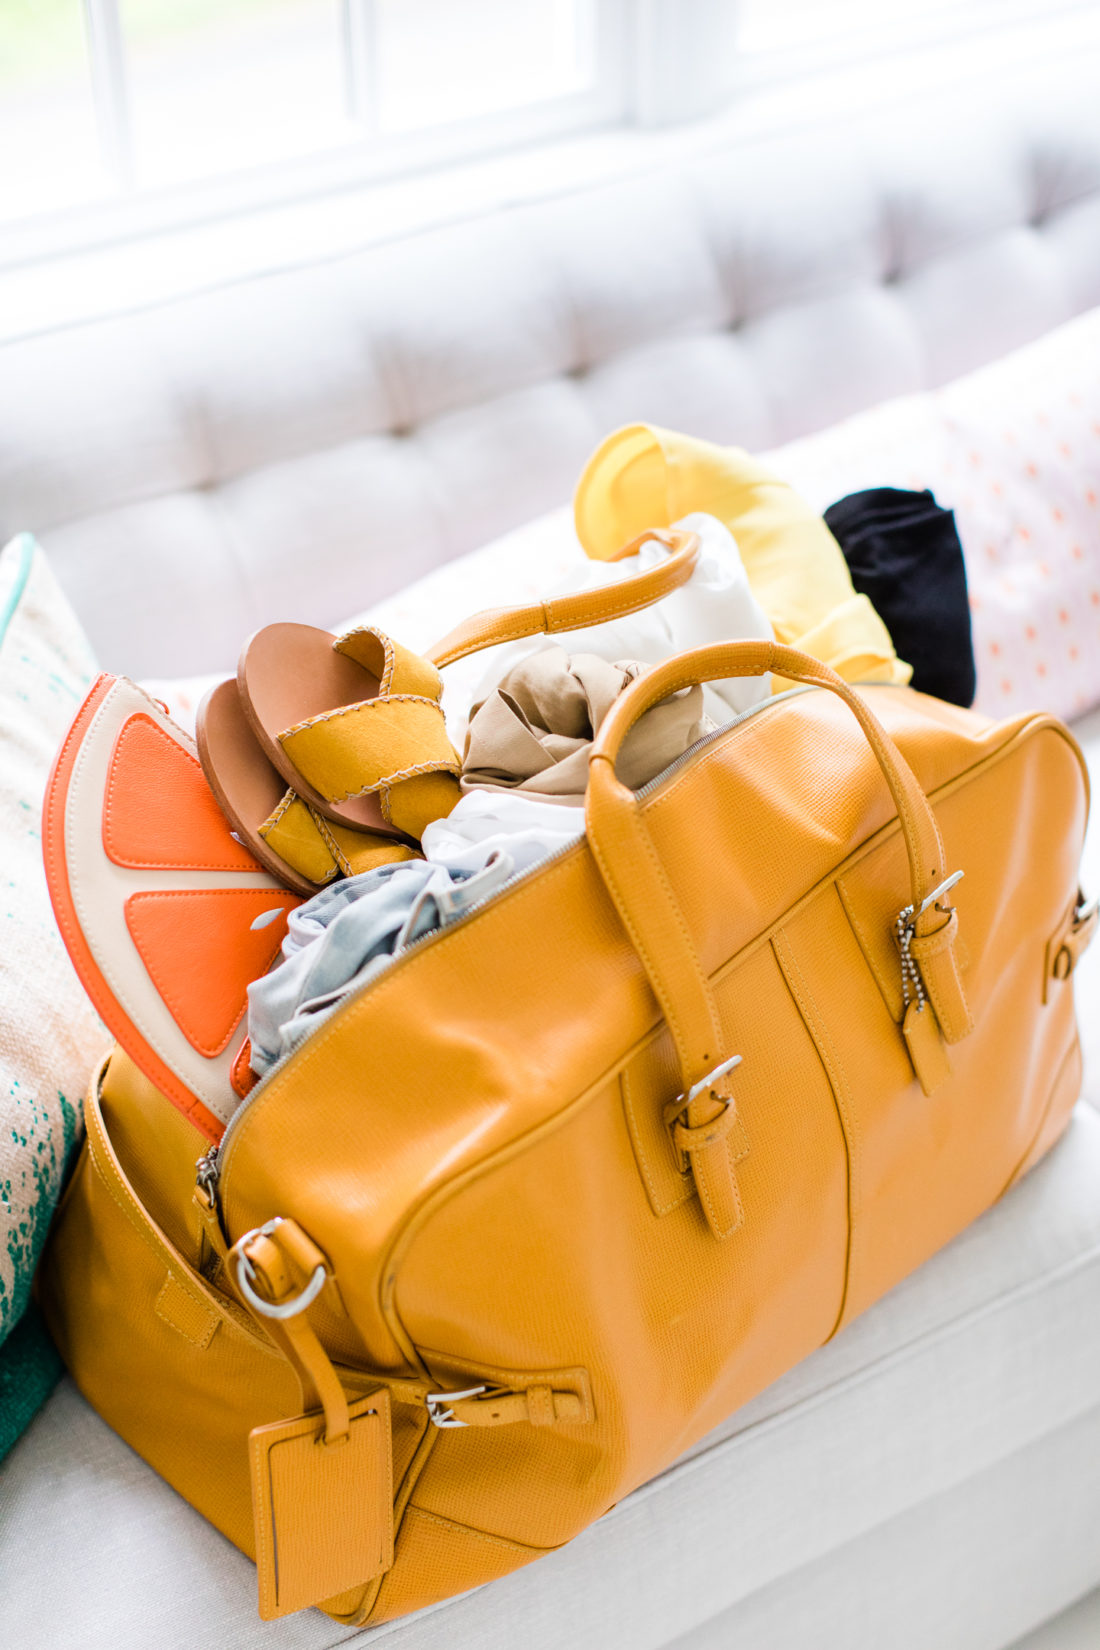 Eva Amurri Martino packs a suitcase with just six pieces